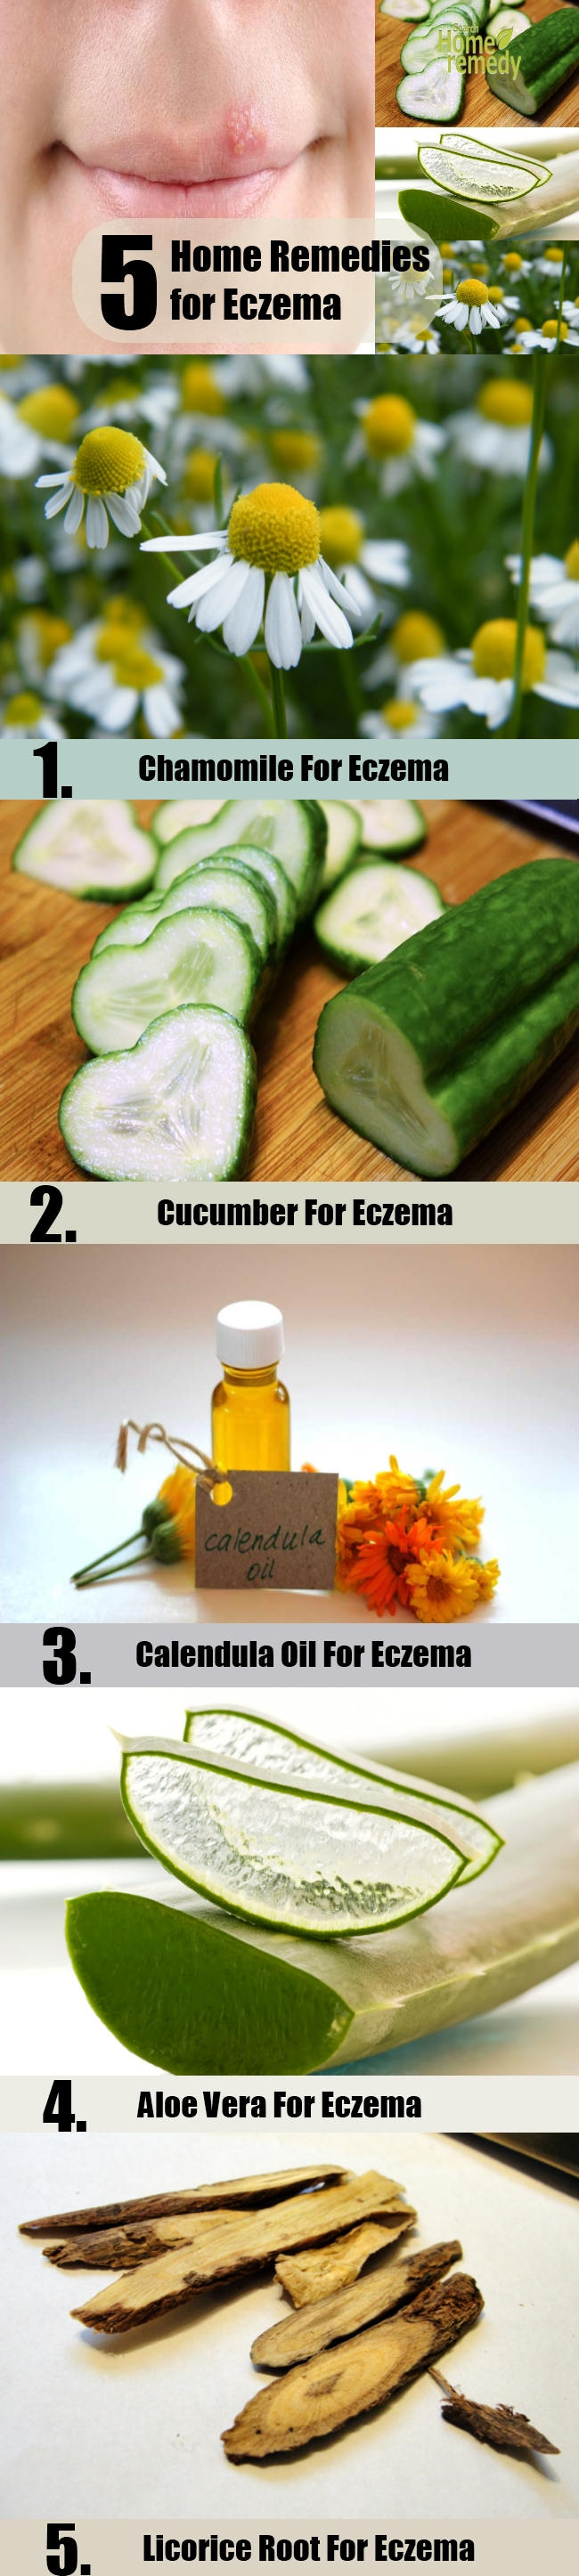 5 Home Remedies for Eczema